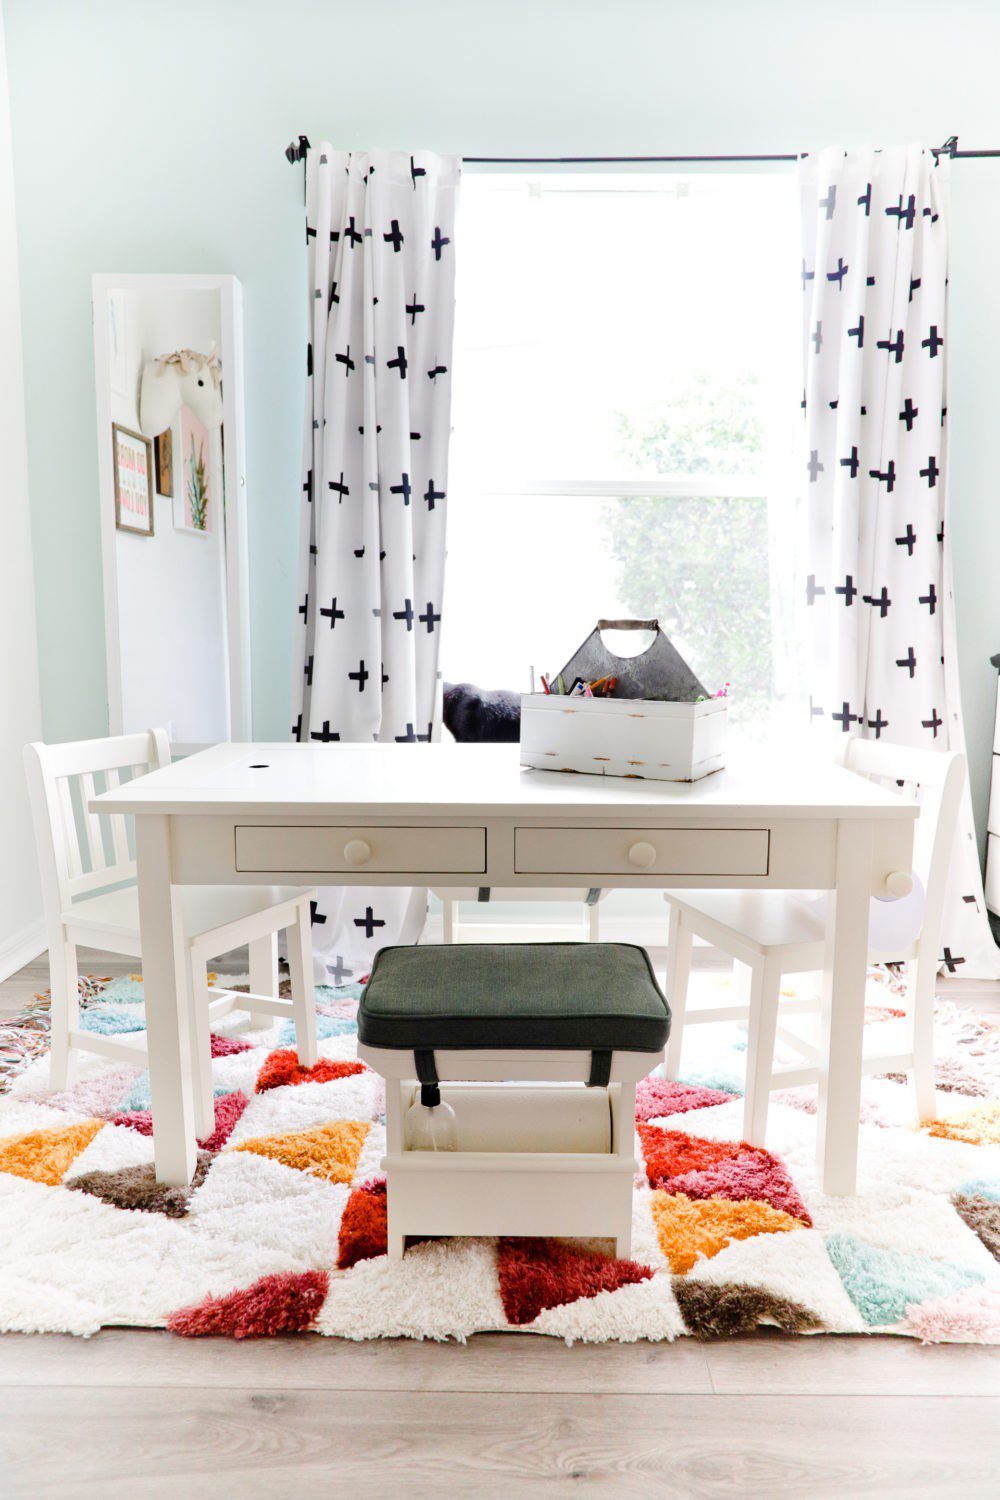 6 Best Tips to Transition Your Child from Crib to Toddler Bed: Aria's Big Girl Bed| 6 Best Tips to Transition Your Child from Crib to Toddler Bed: Aria's Big Girl Bed by popular Florida lifestyle blog, Fresh Mommy: image of a play art table.